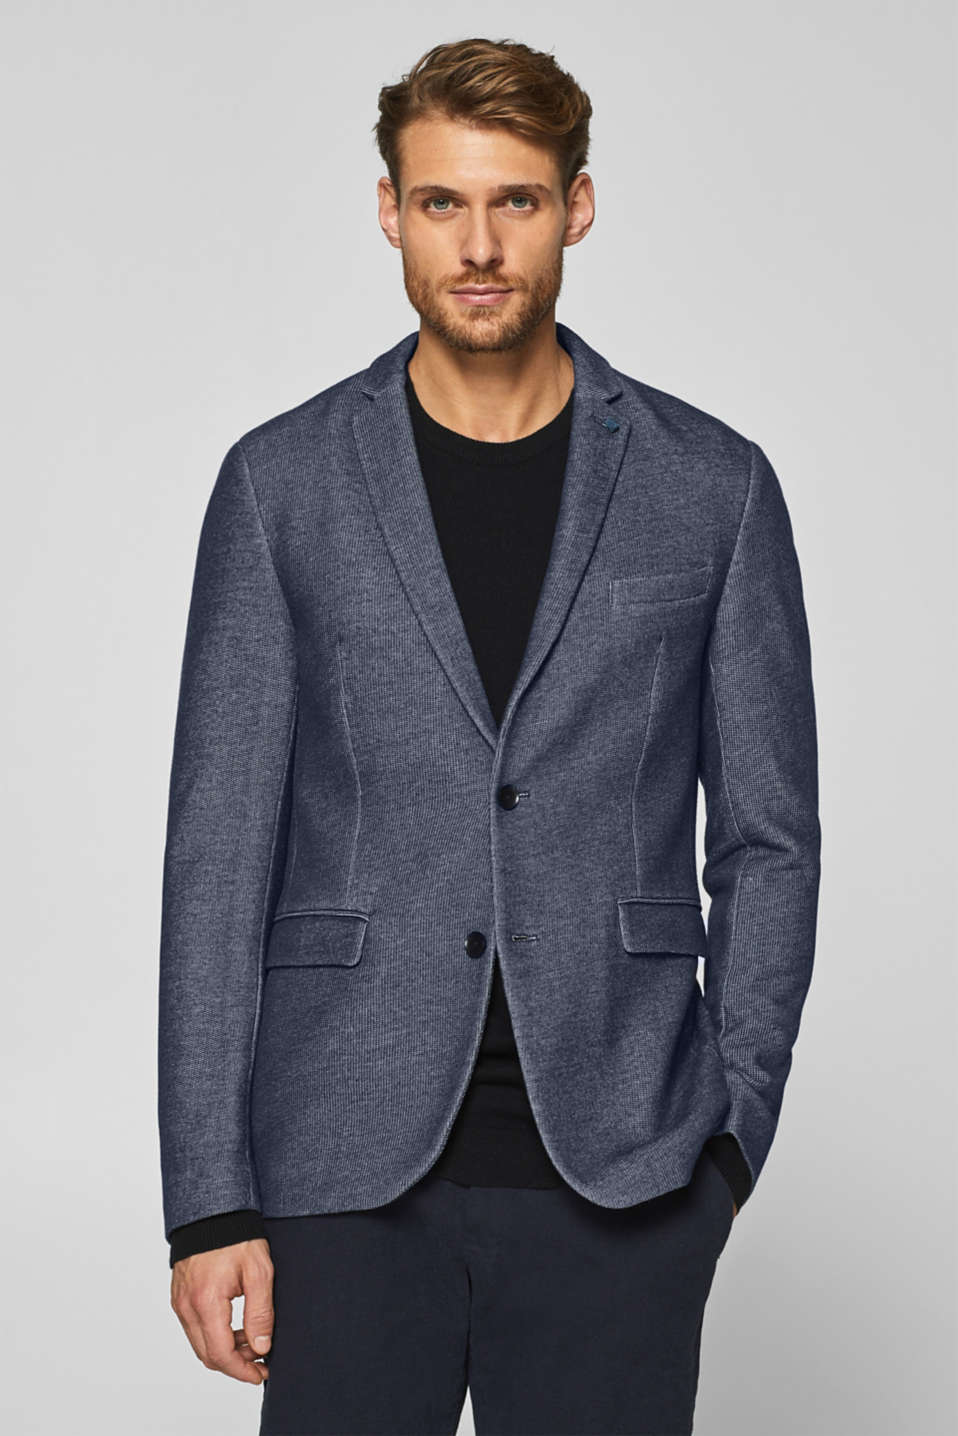 Esprit - Jacket made of textured jersey